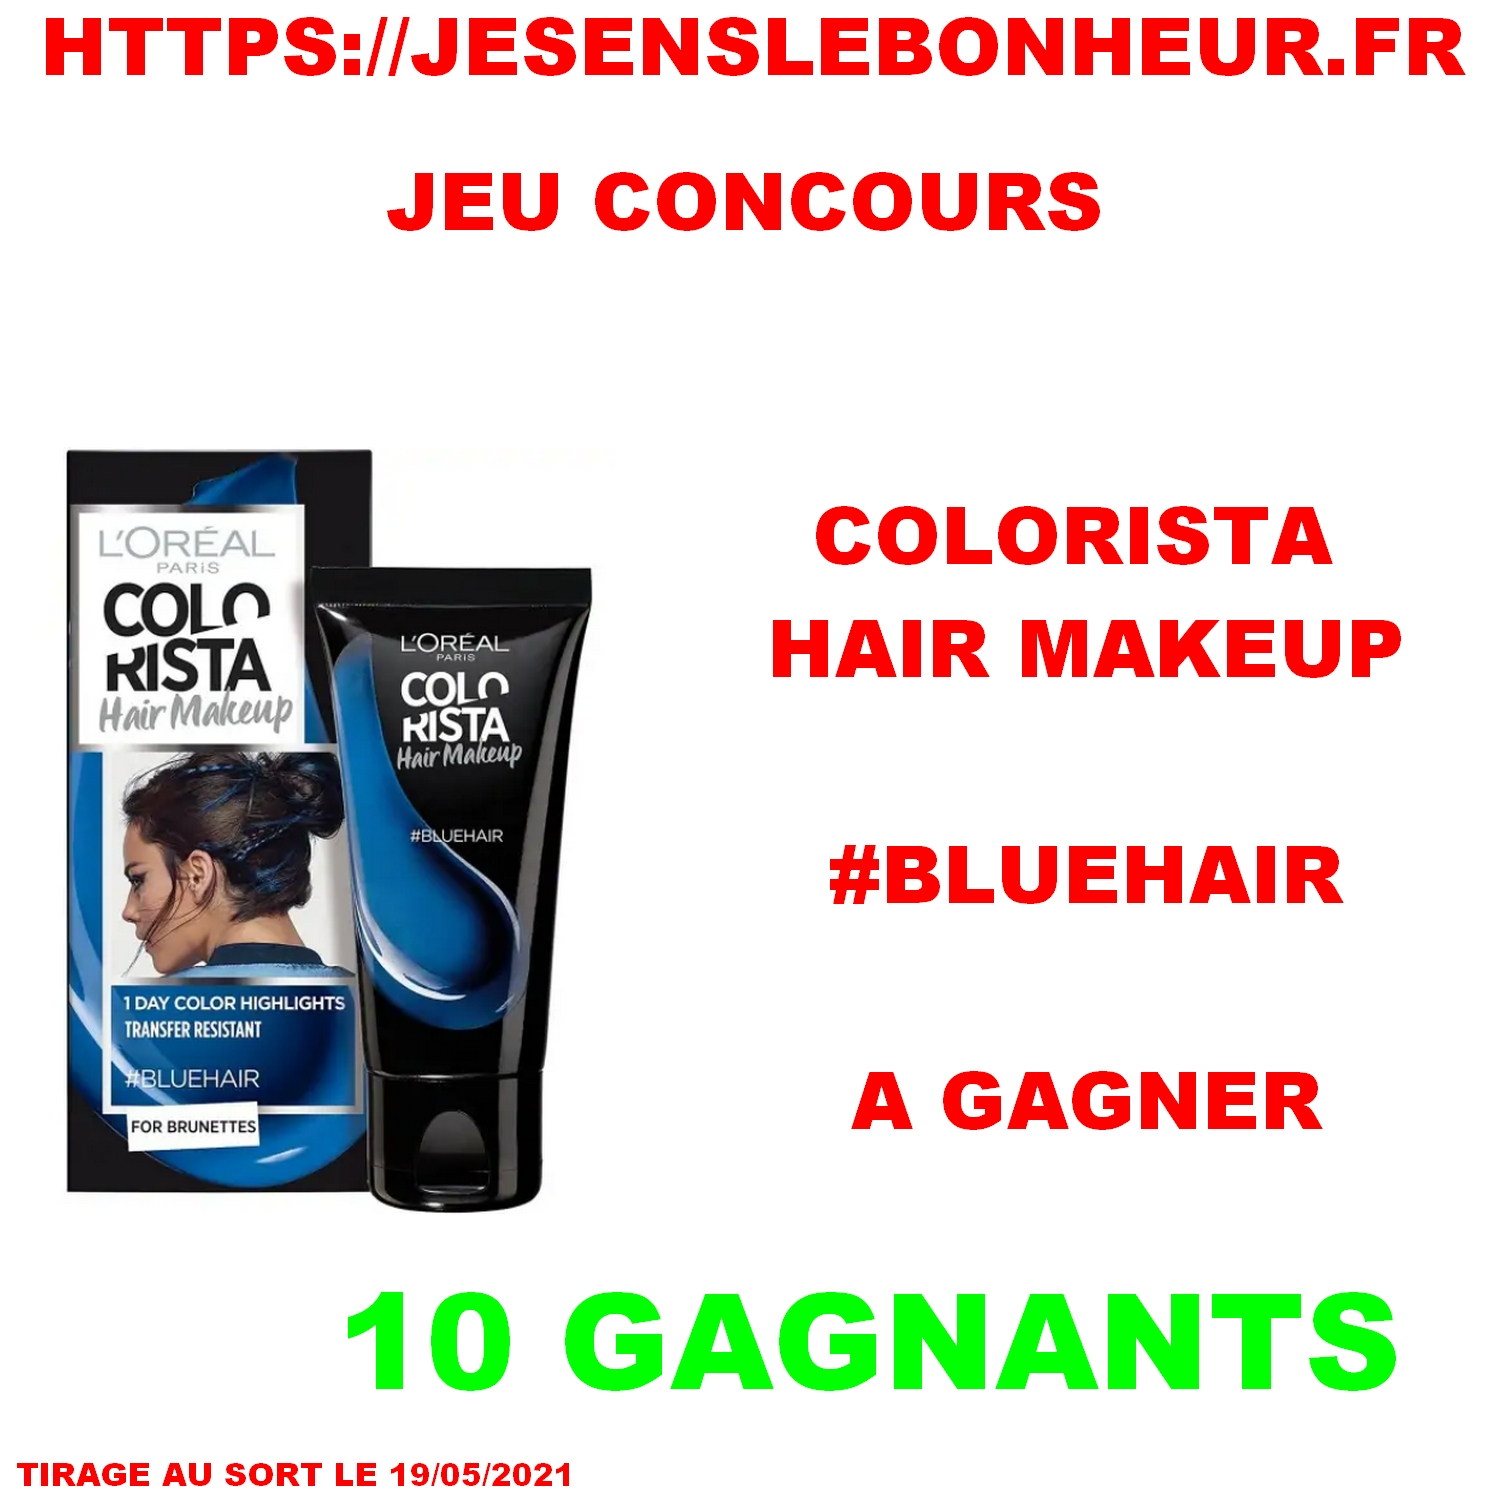 1 COLORATION HAIR MAKEUP #BLUEHAIR COLORISTA DE L'OREAL PARIS